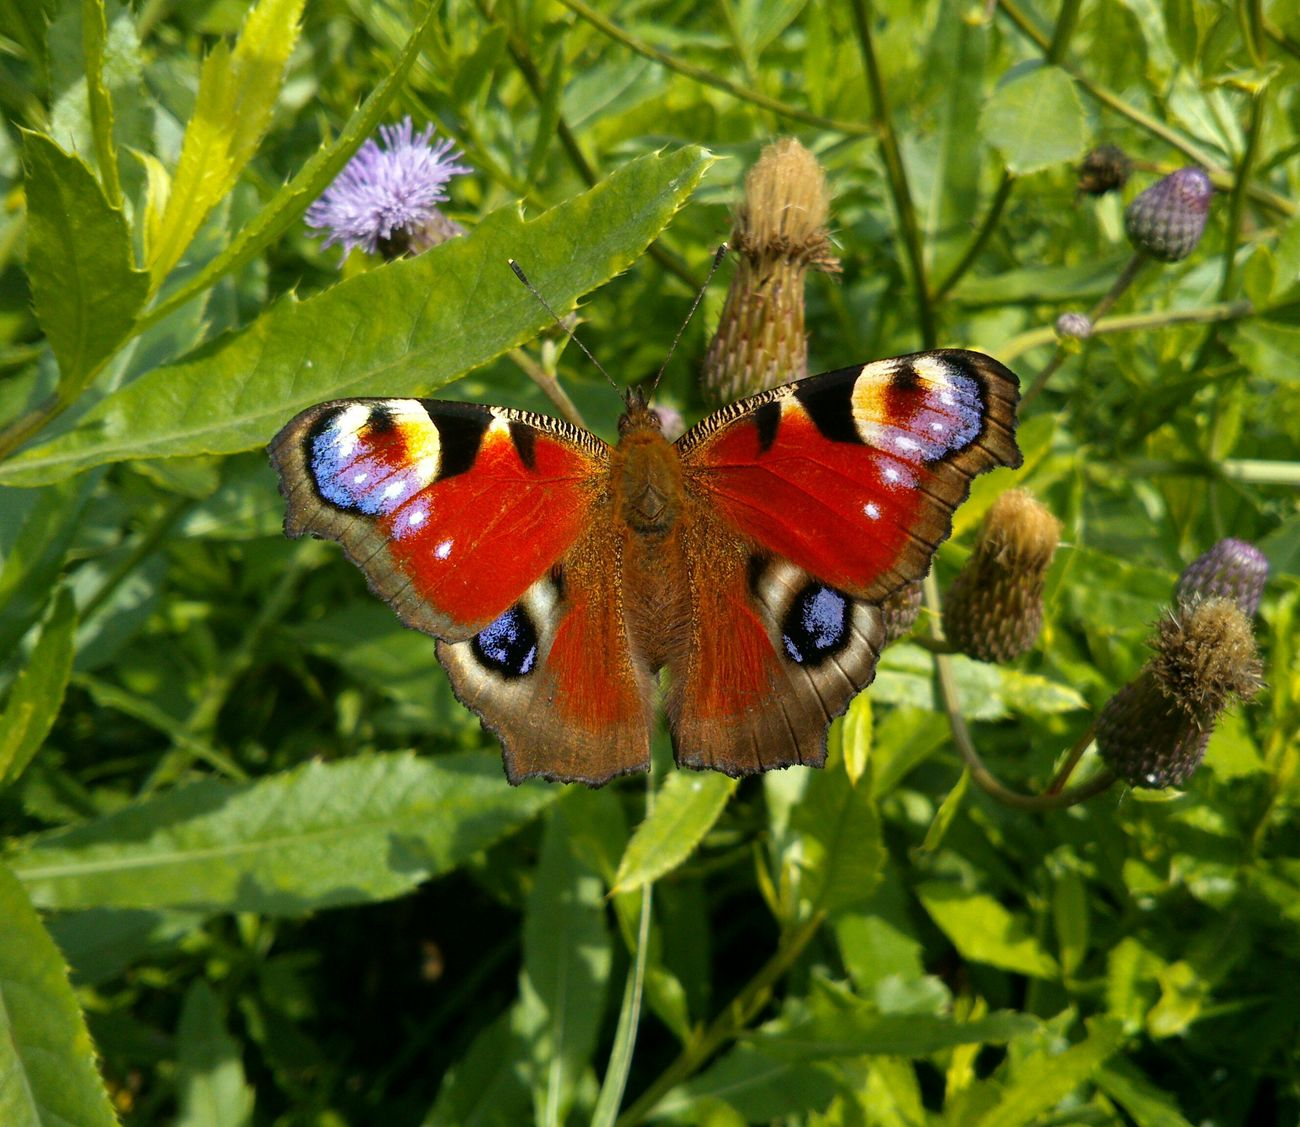 There's no any photo editing. Papillon Paon Butterfly Emperor Moth бабочка павлиний глаз